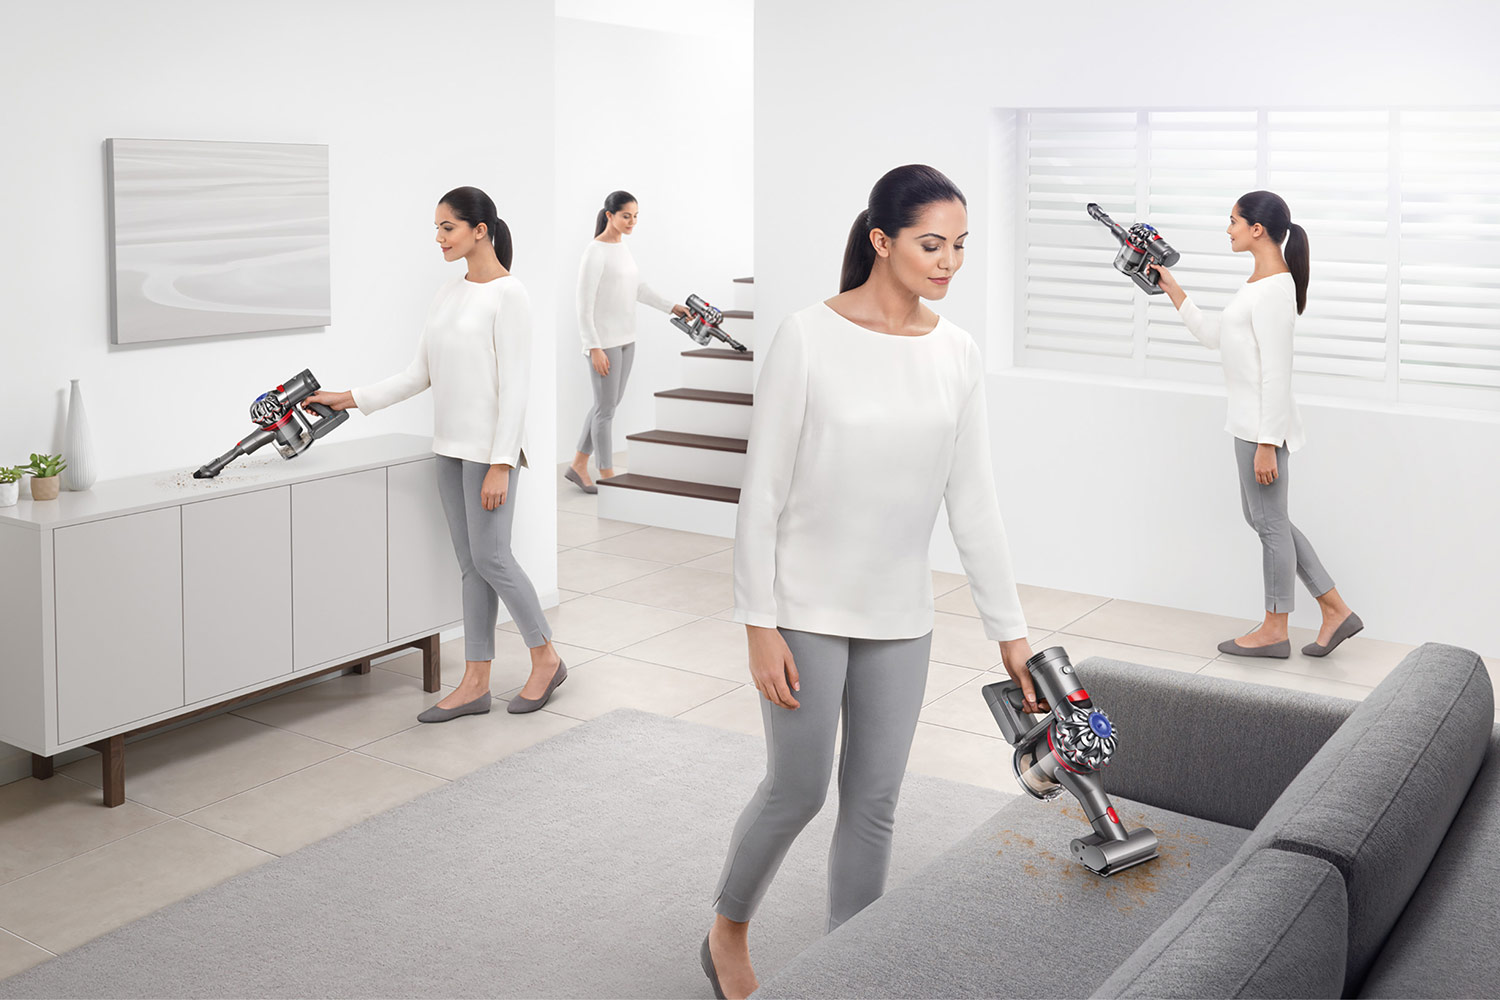 Dyson Cordless Vacuum Commercial Actress Wwwtopsimagescom